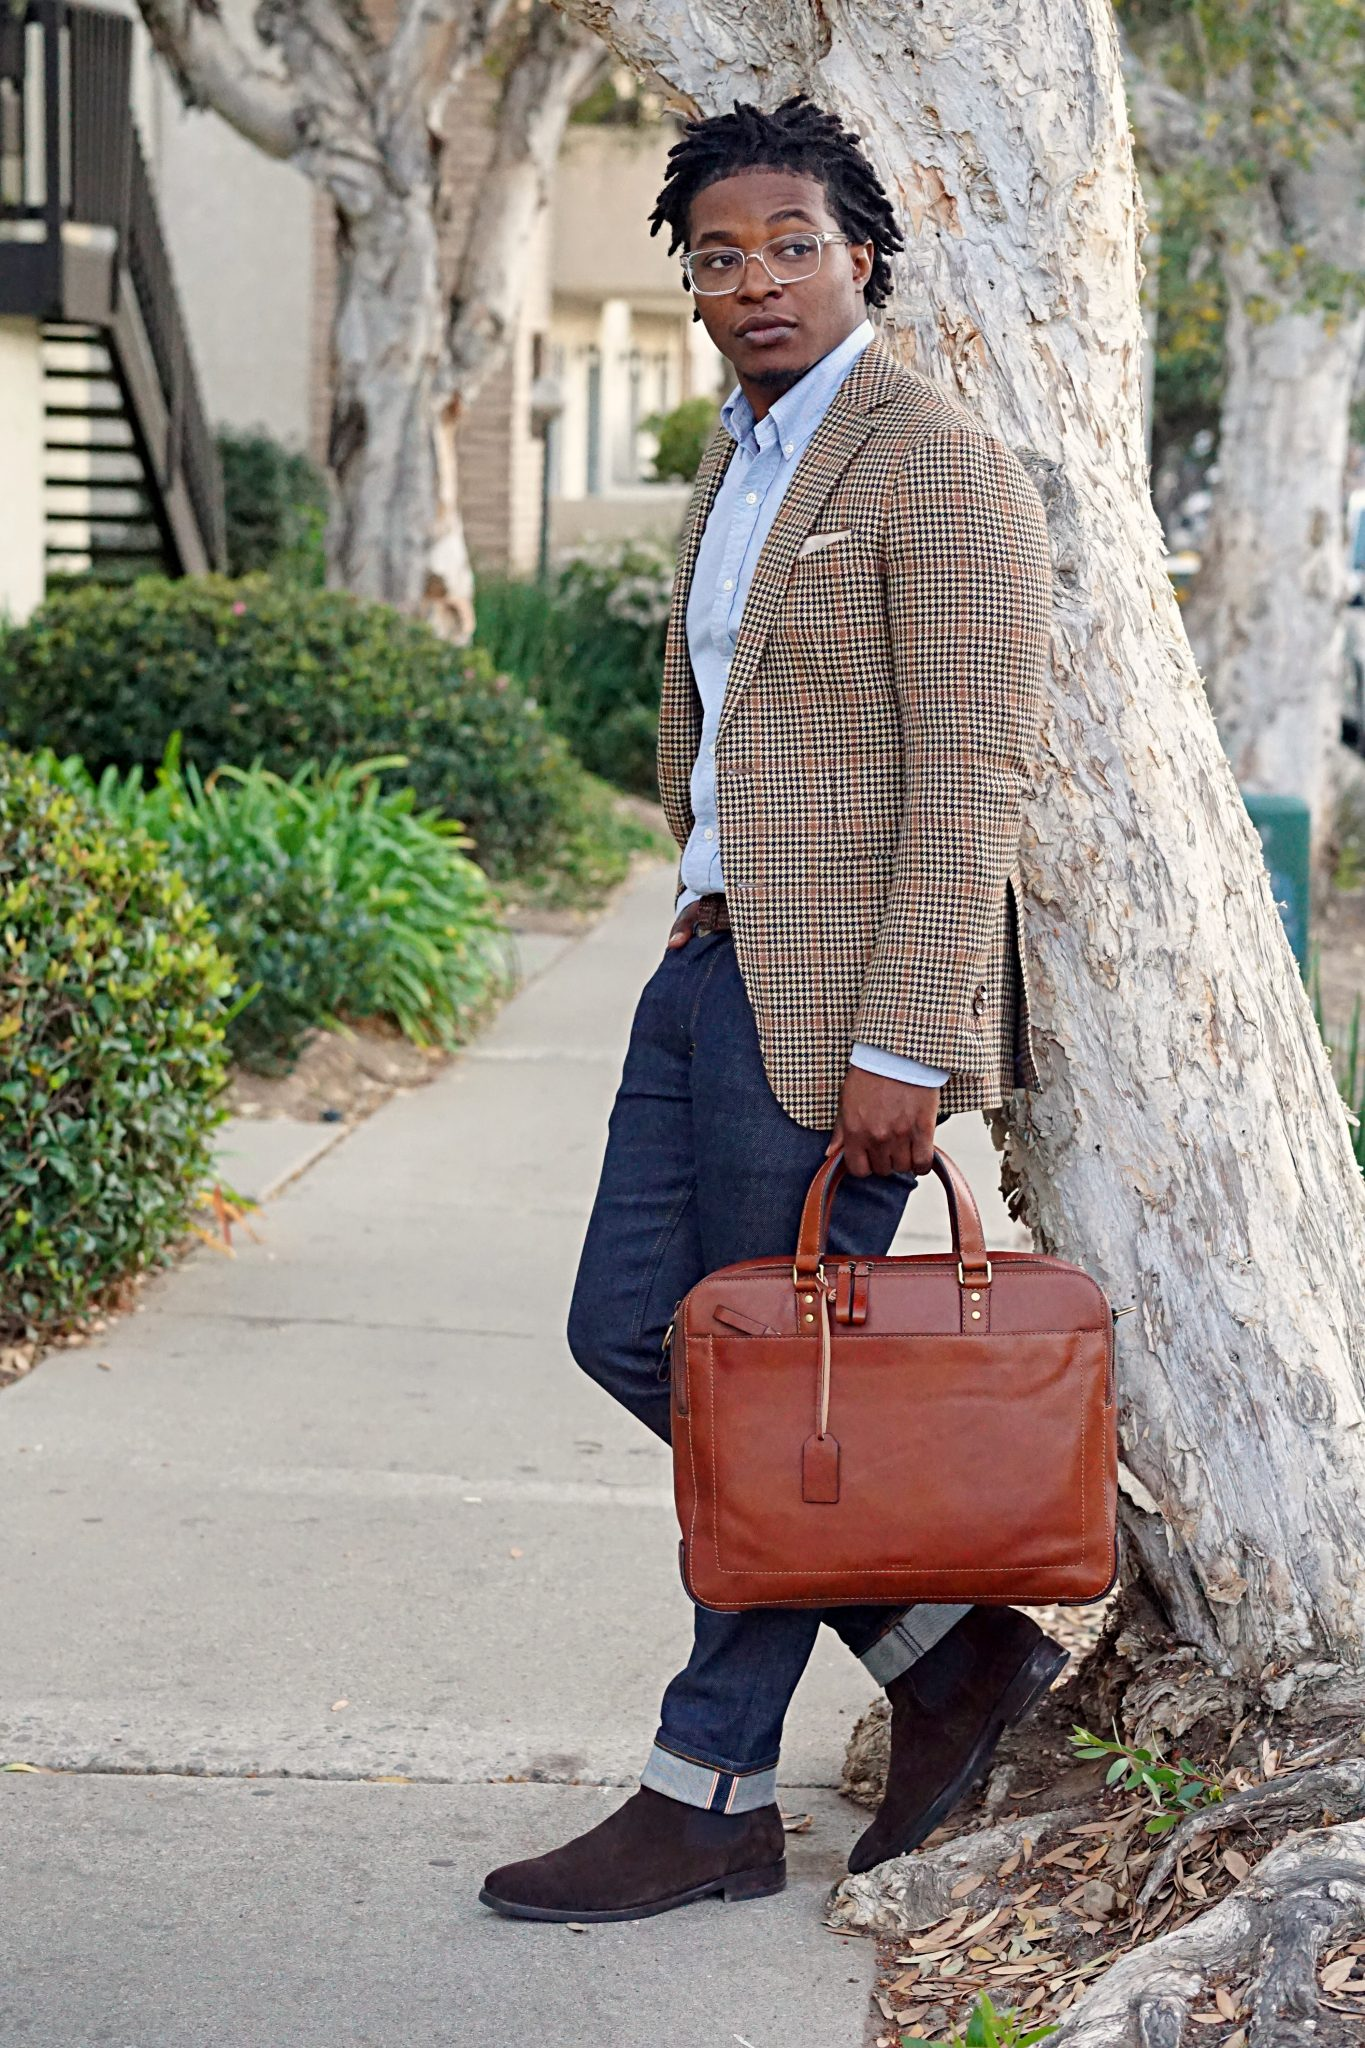 Young Entrepreneur Essentials: The Slim Leather Briefcase